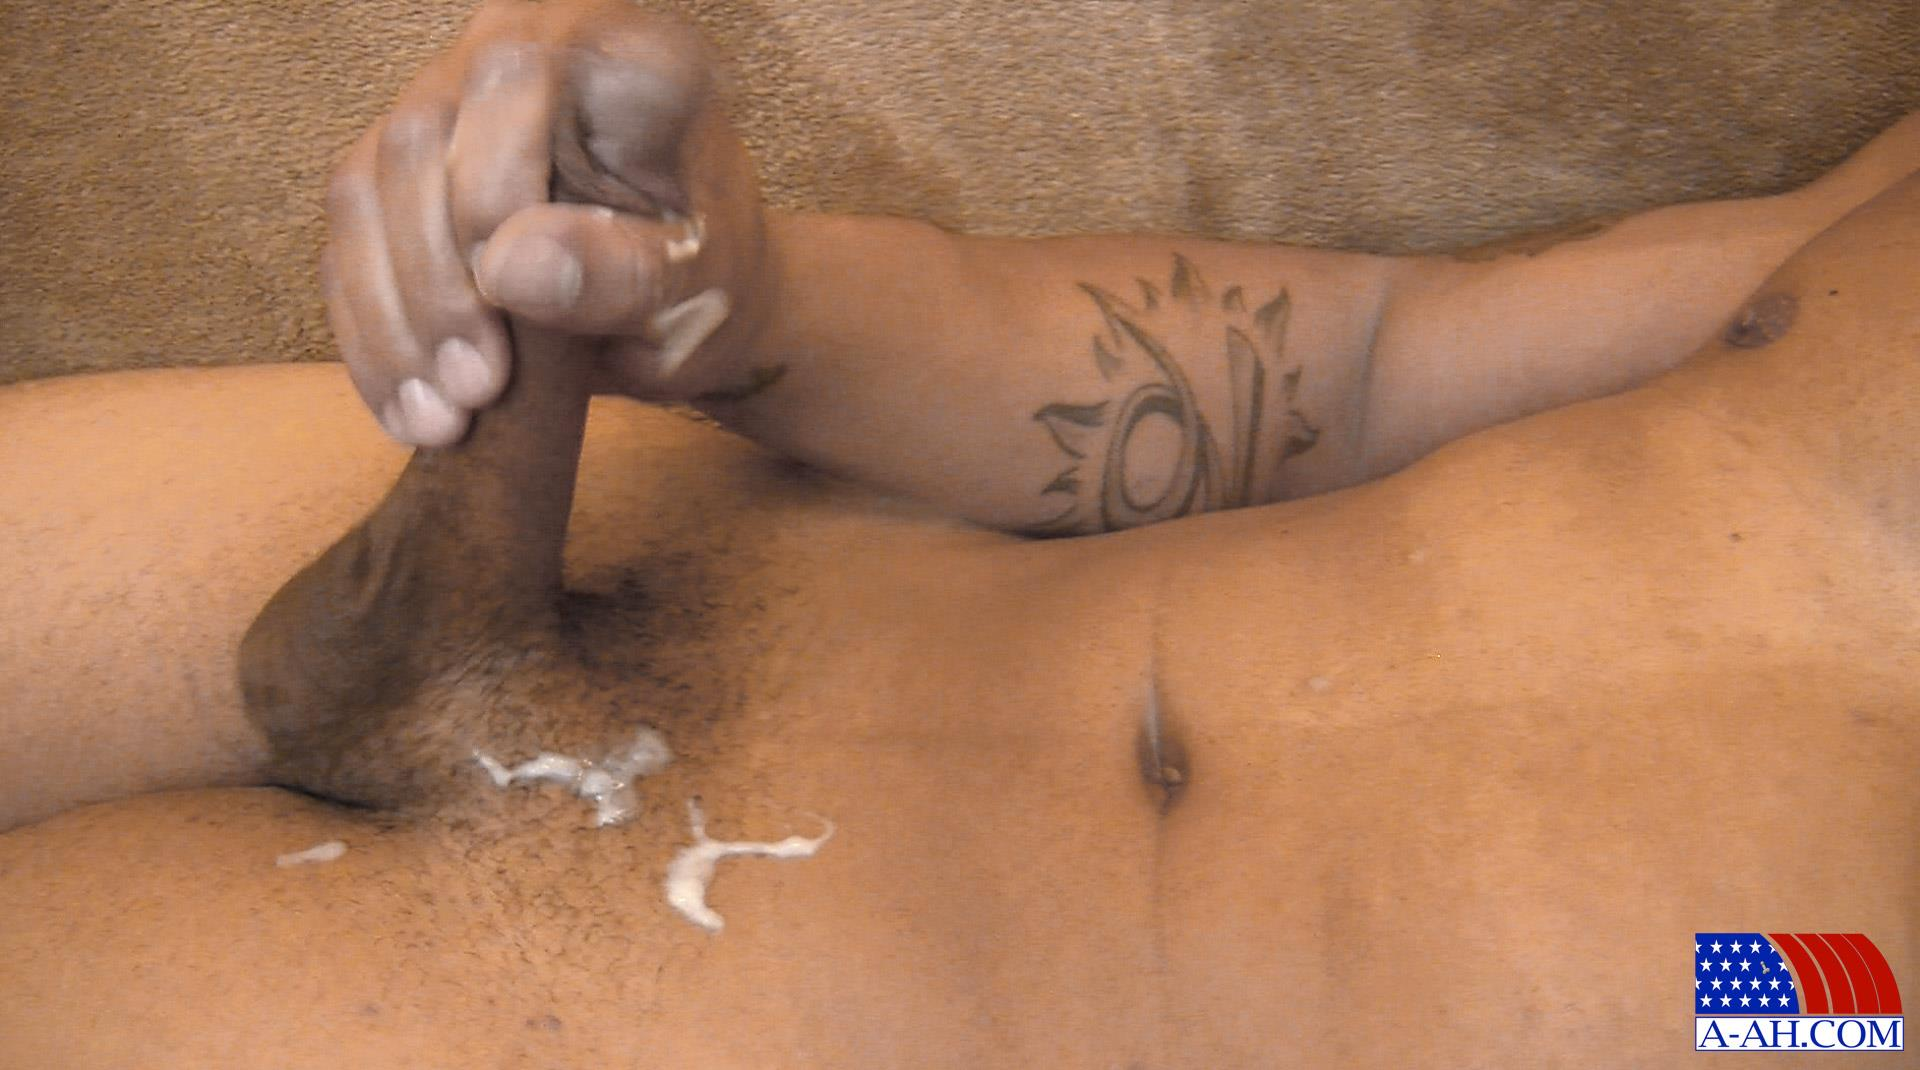 Ebony gayamateur gets cock jerked